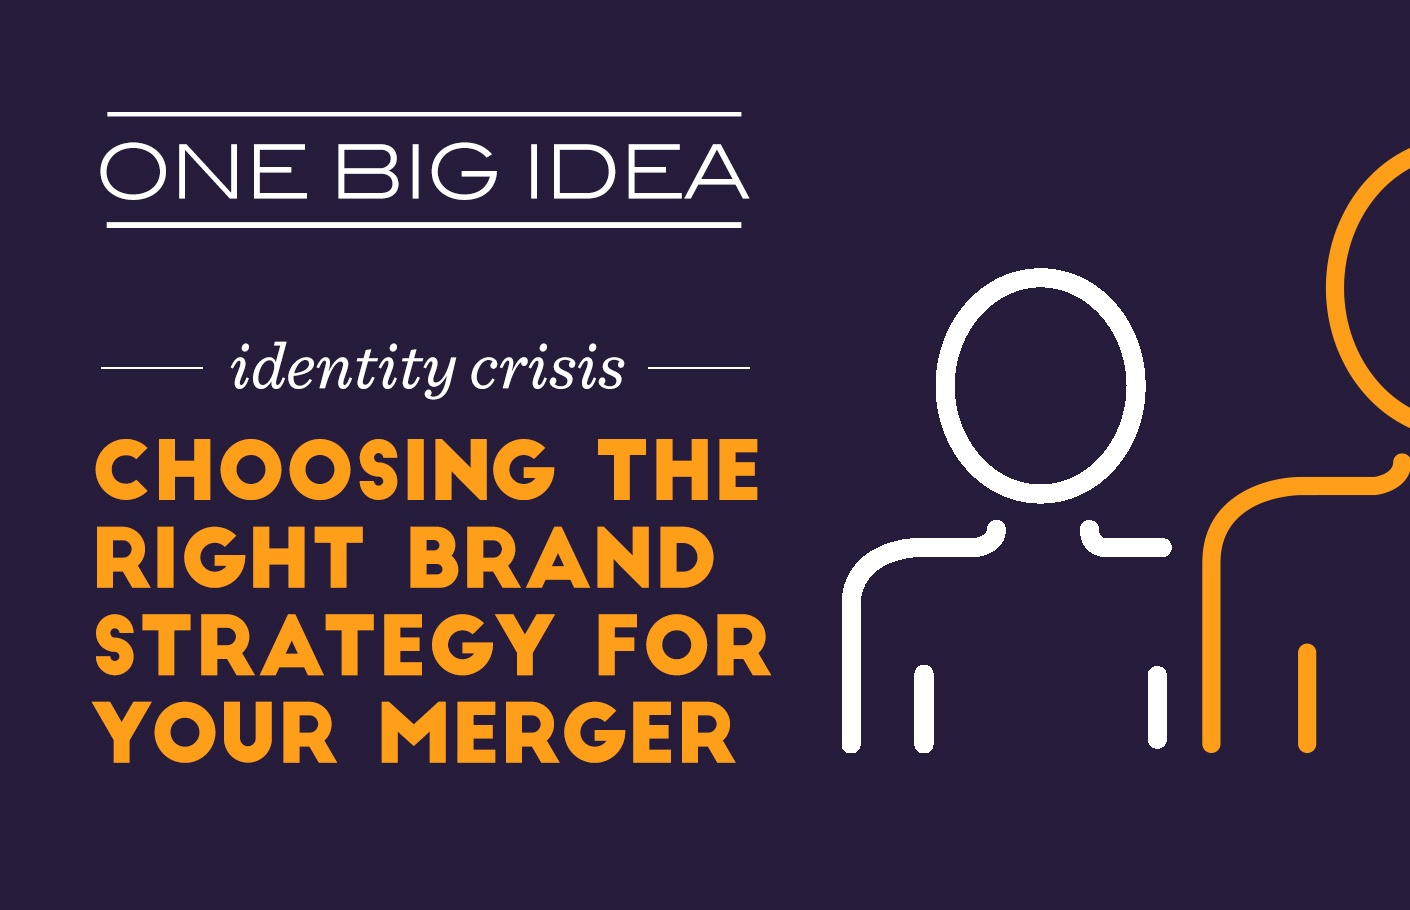 One Big Idea: Identity Crisis - Choosing the Right Brand Strategy for Your Merger